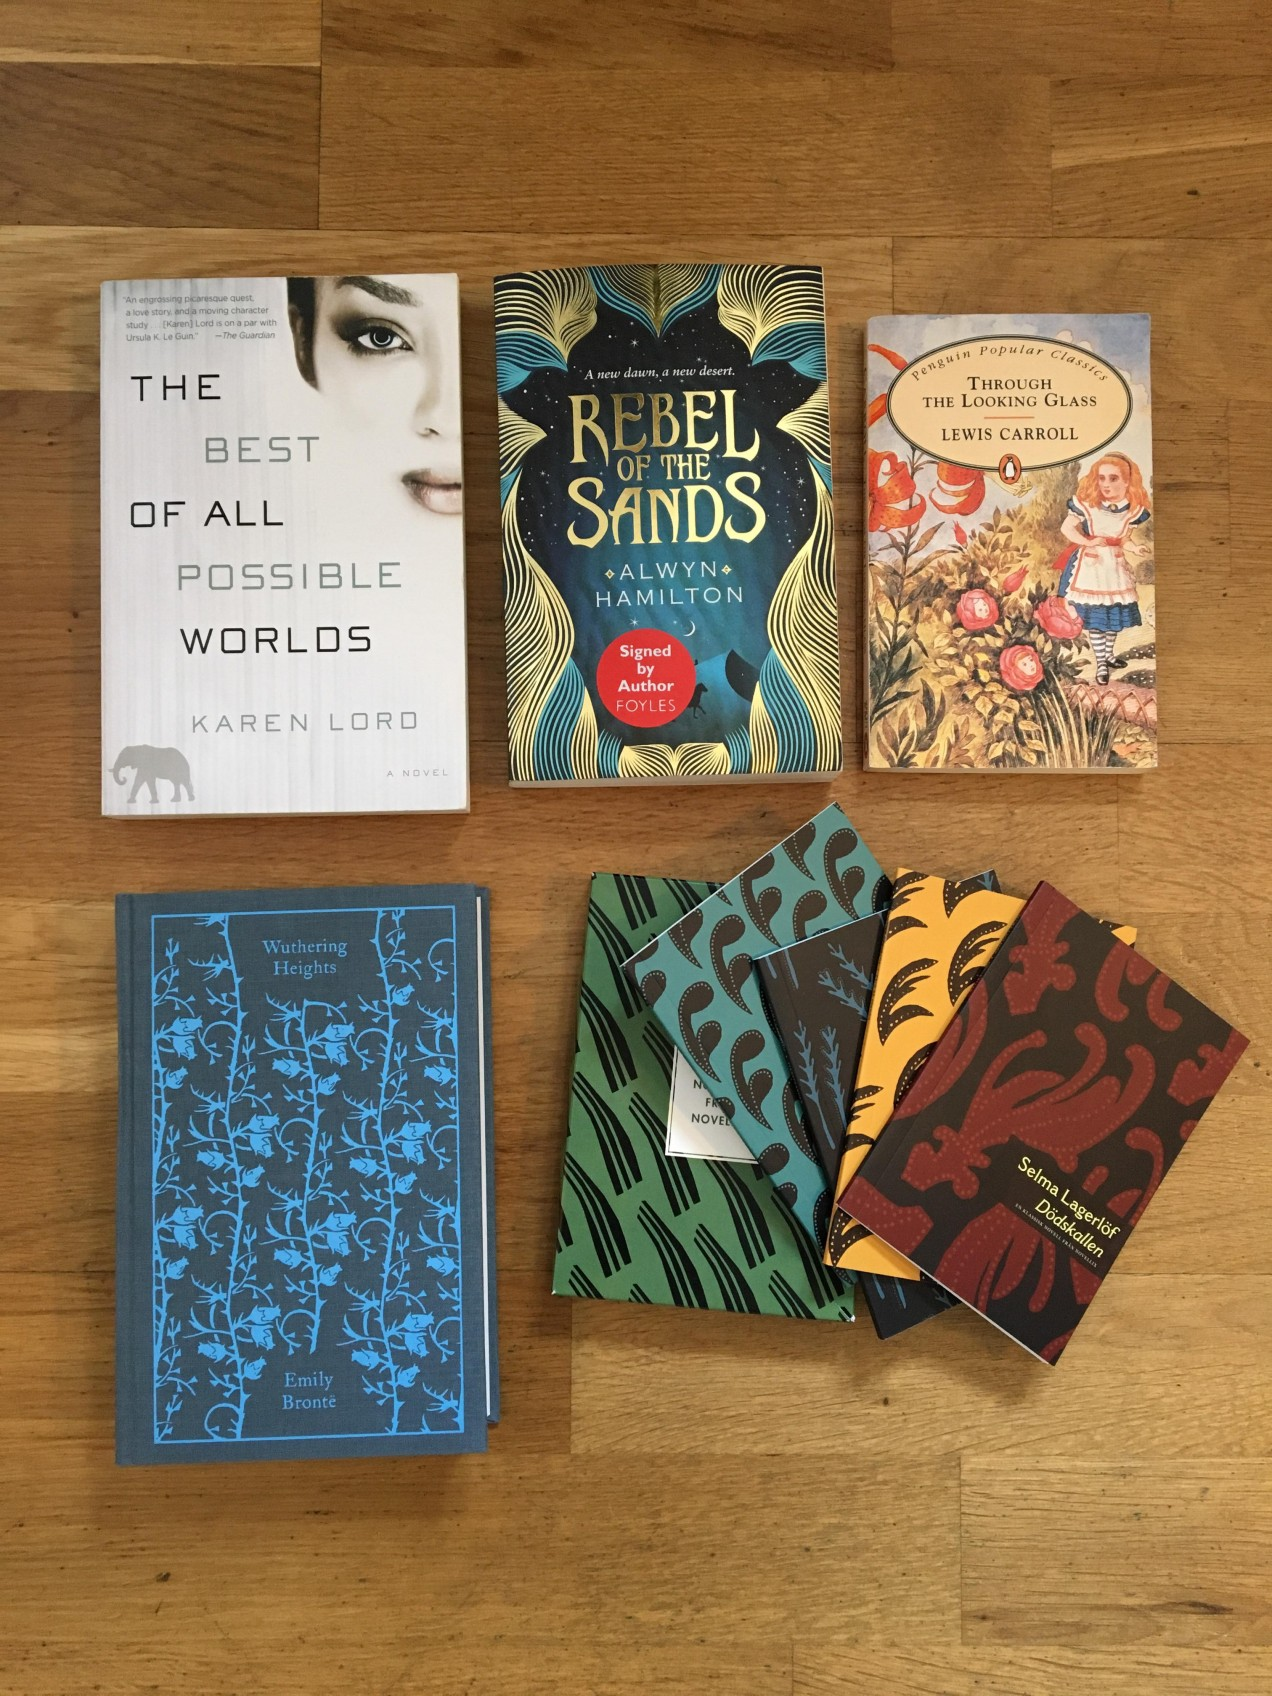 "Karen Lord: ""The best of all possible worlds"" med omslag av Victoria Wong. ""Rebel Sands"" av Alwyn Hamilton.  ""Through the looking glass"" av Lewis Carroll, Withering hights av Emily Brontë, samt Fyra noveller av Selma Lagerlöf, med omslag av Lisa Benk."